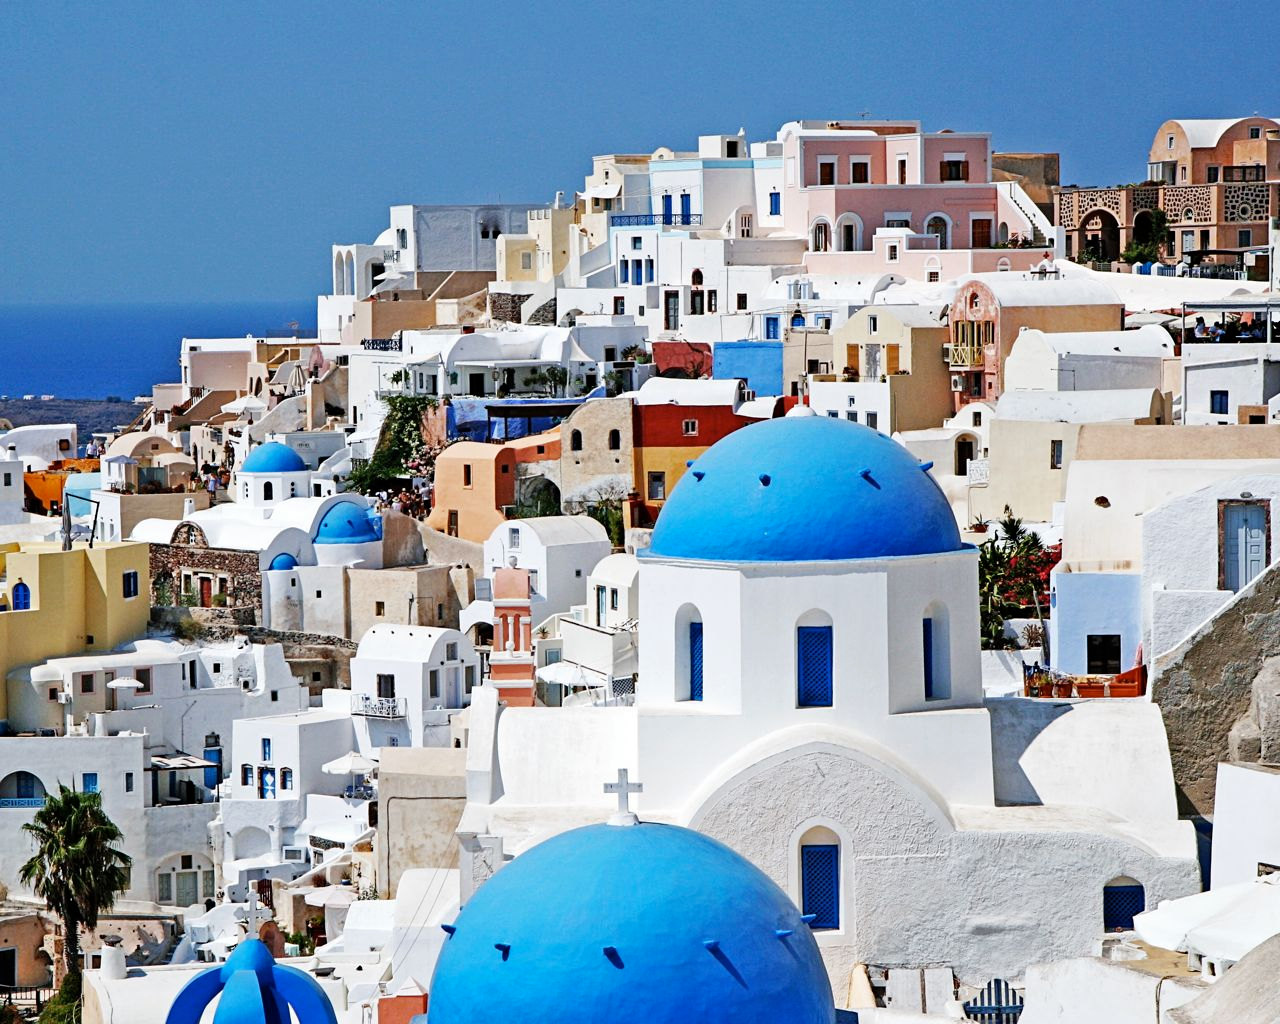 Santorini Greece Photography - Monaco Blue Domes White Church Photo Greek Art Travel Photography Mediterranean Decor